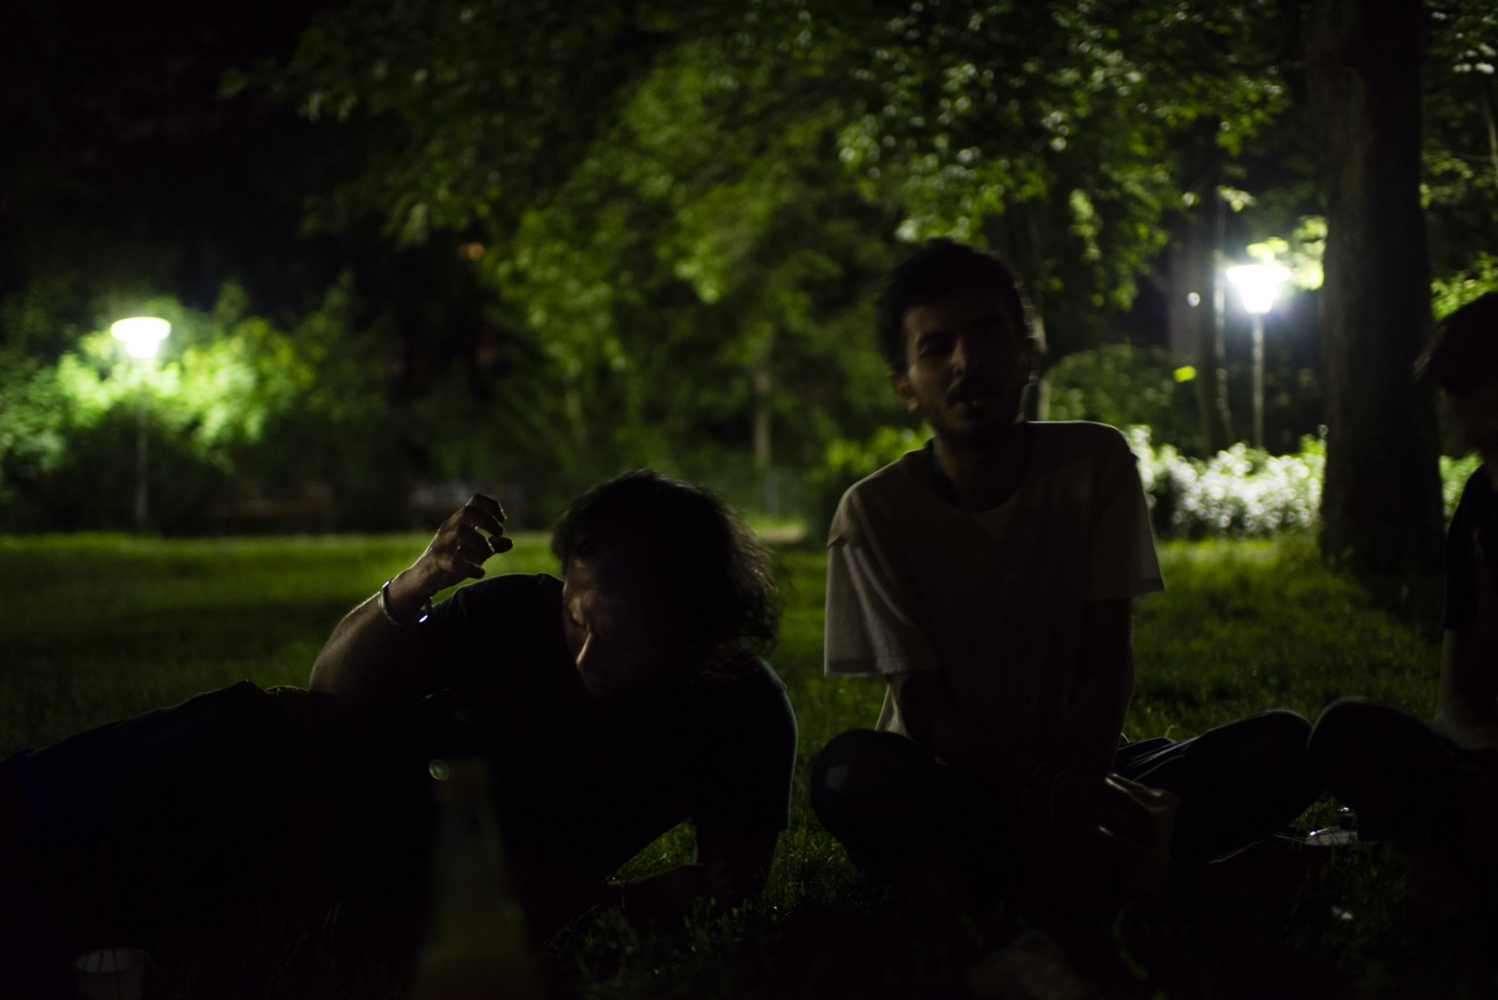 BERLIN| GERMANY | 2016-06-04 | Mohammed and his Syrian friends, mainly musicians or activists who are now in exile as refugees in Germany, come together late at night, singing revolutionary songs at a park.